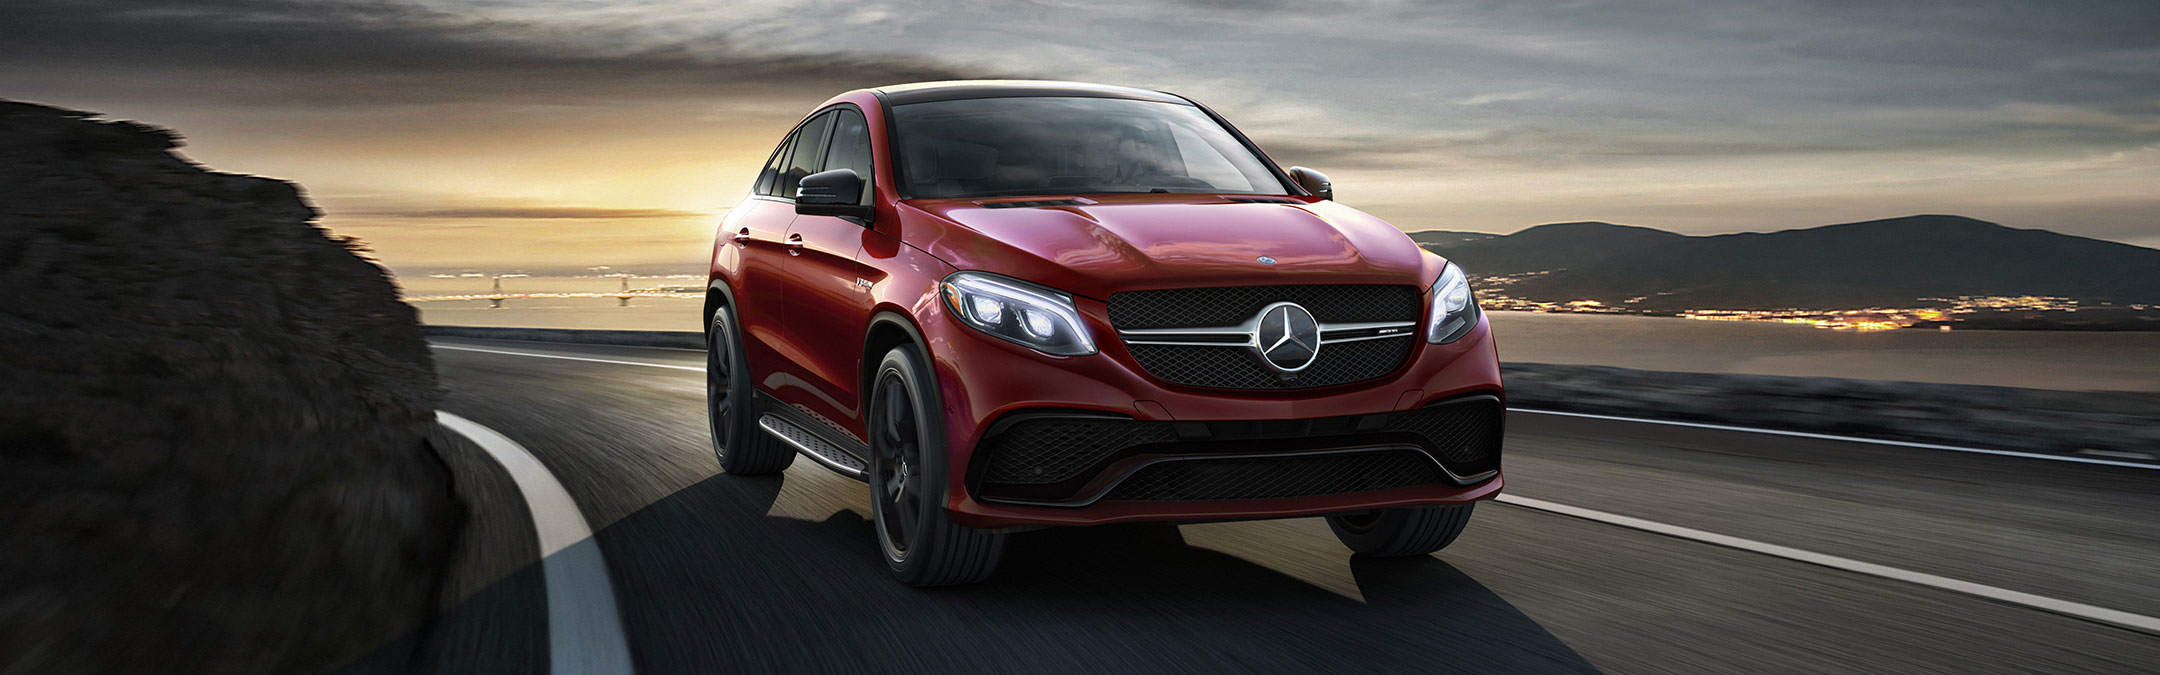 AMG INTRO HEADER GLE COUPE